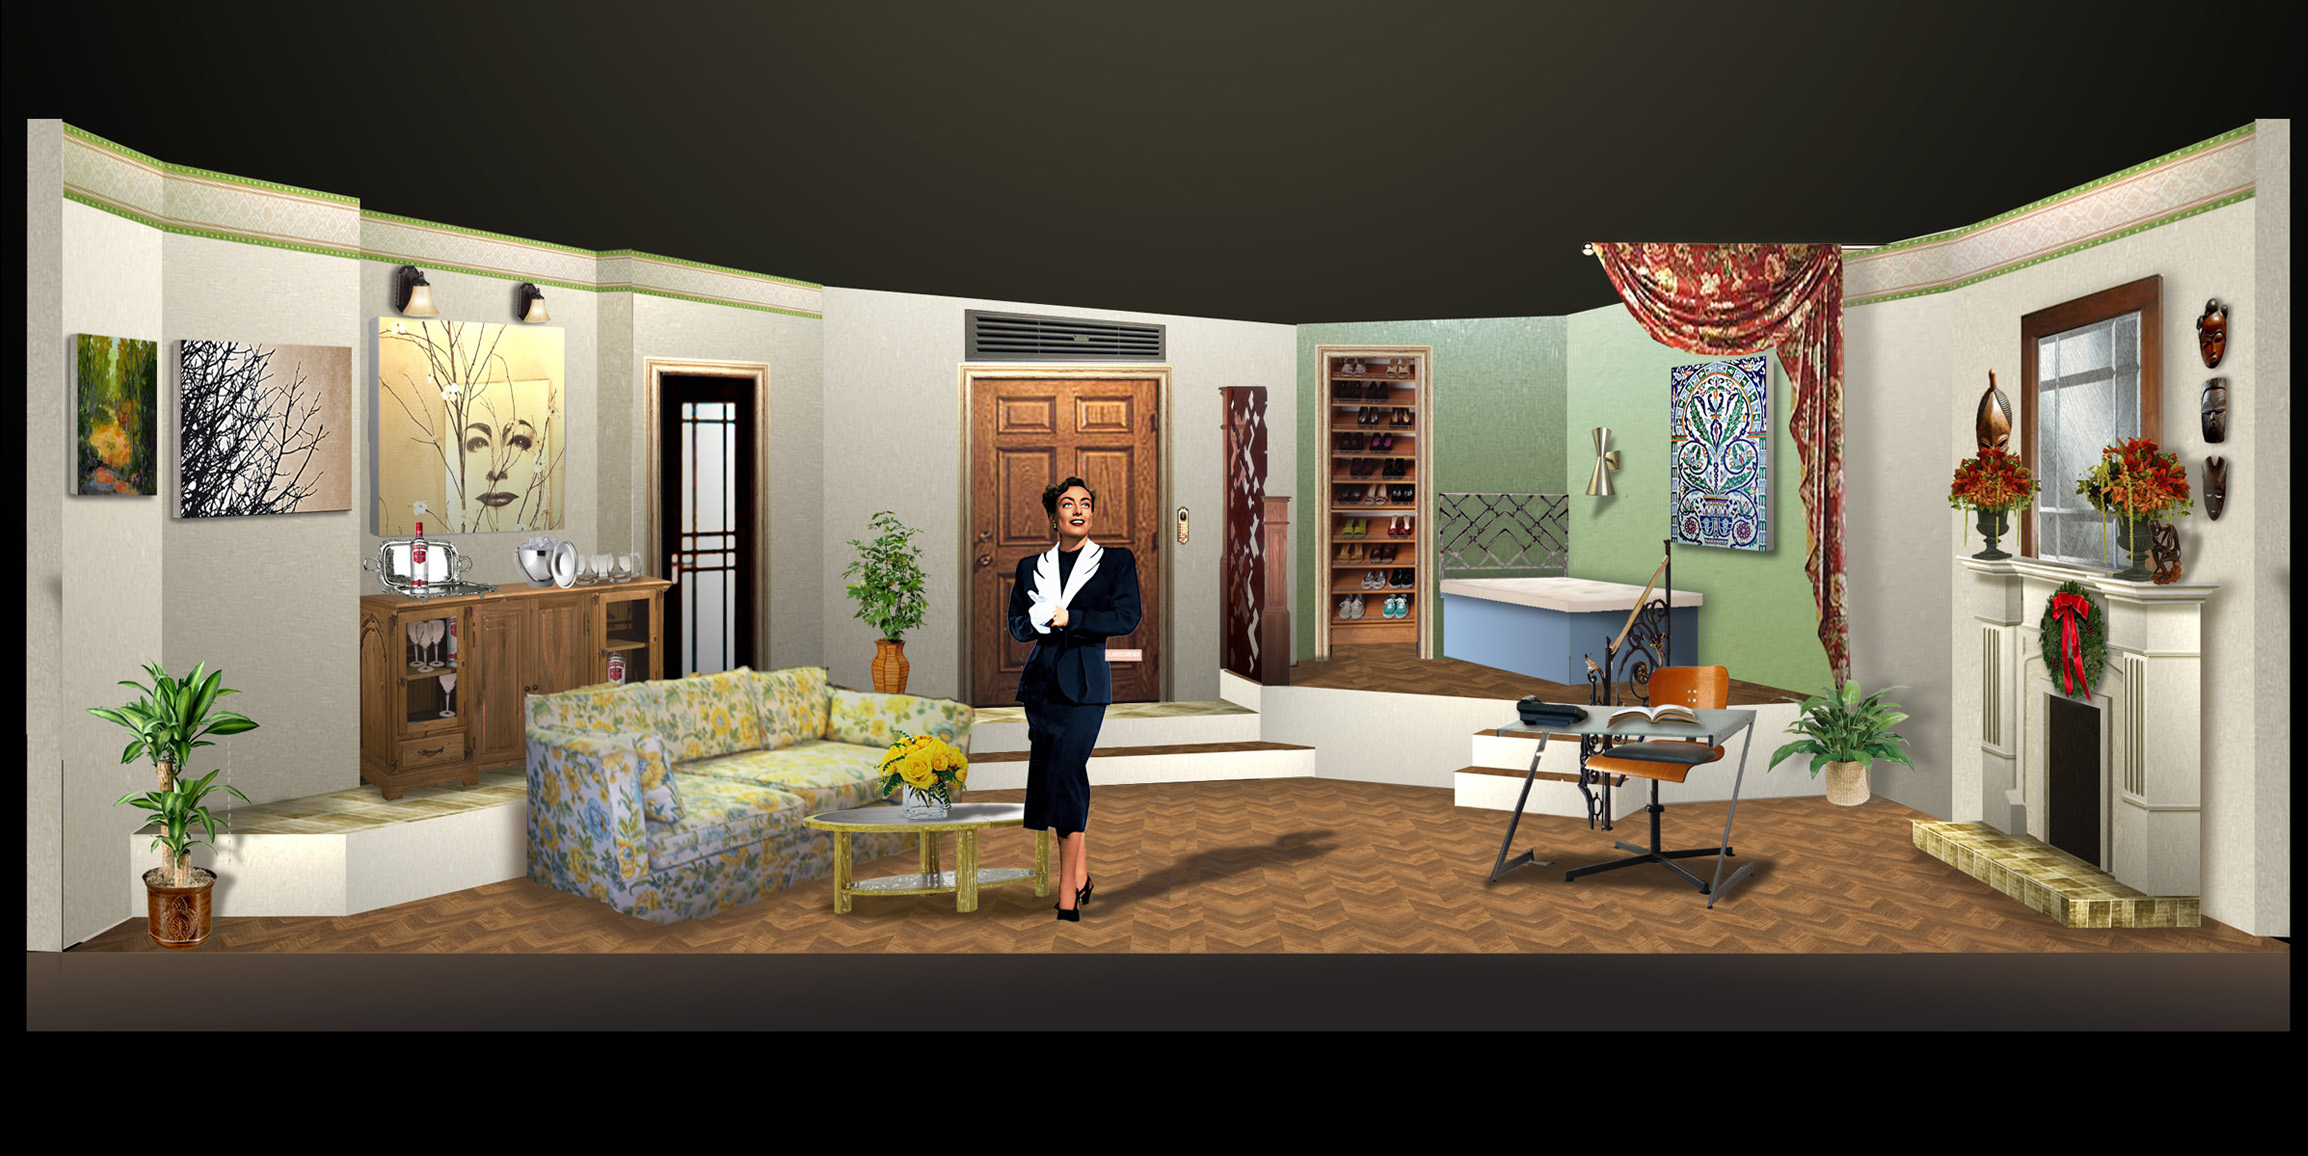 Fashionable Rendering A Very Joan Crawford Evan Hill Joan Crawford House Palm Springs Joan Crawford House Feud curbed Joan Crawford House